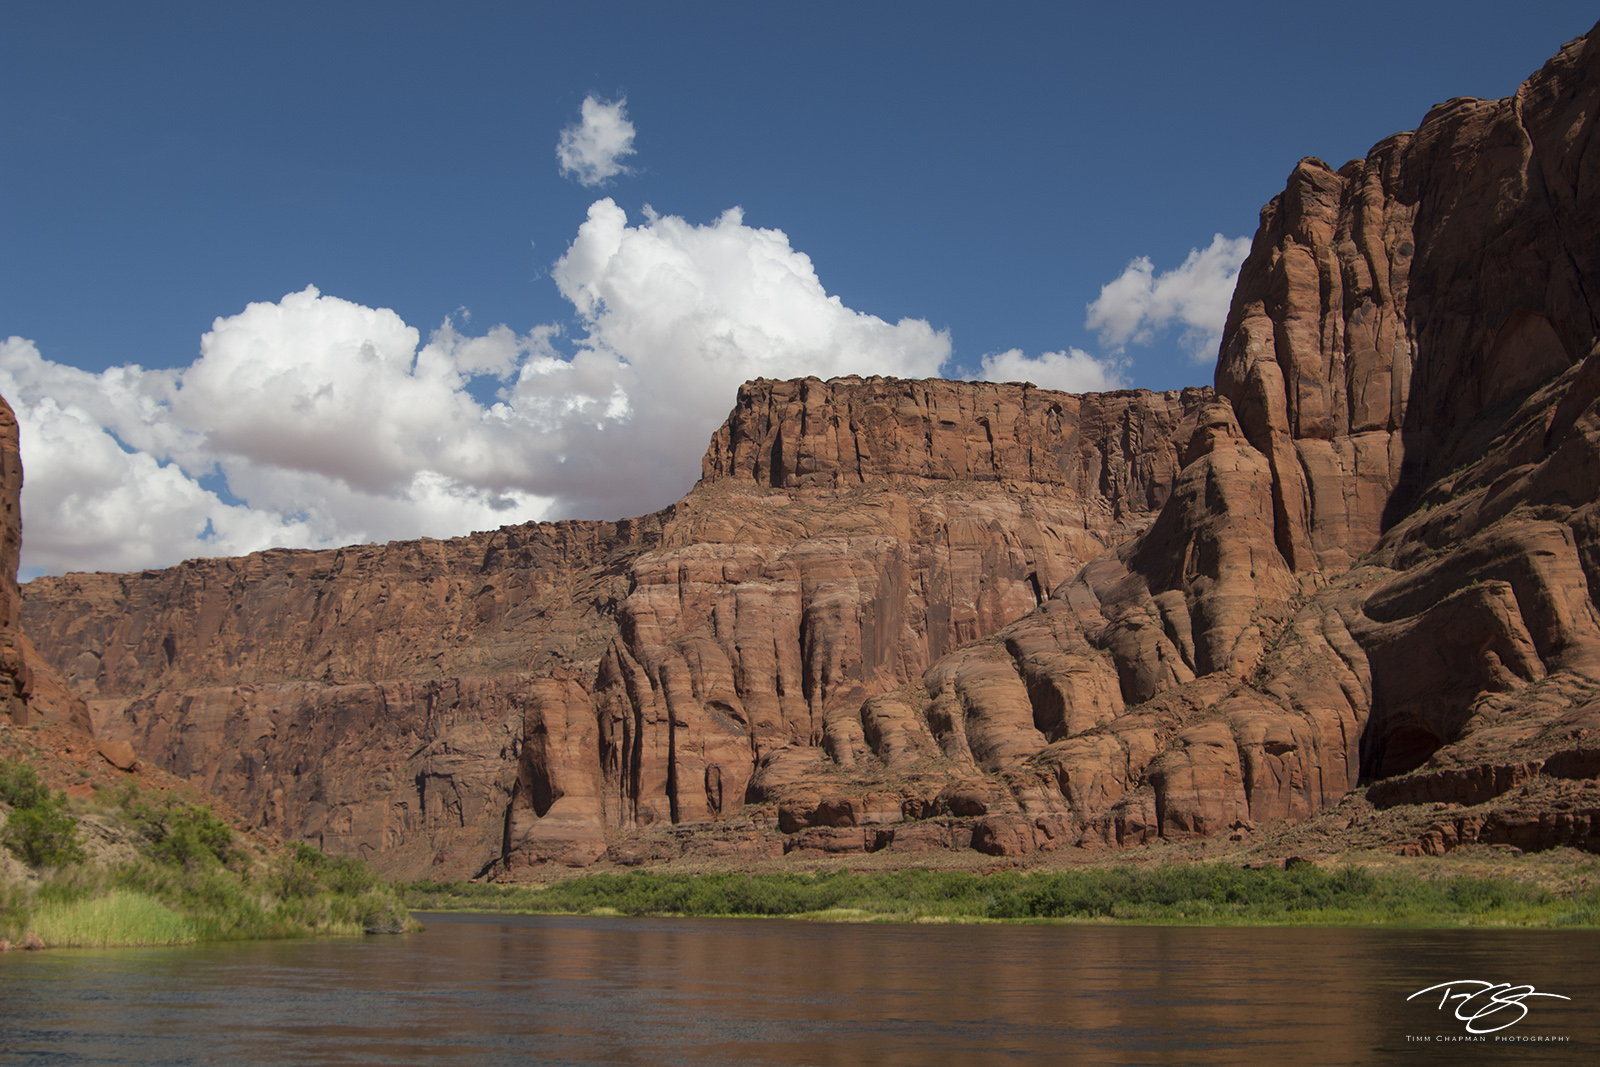 The majestic walls of Glen Canyon tower over the Colorado River